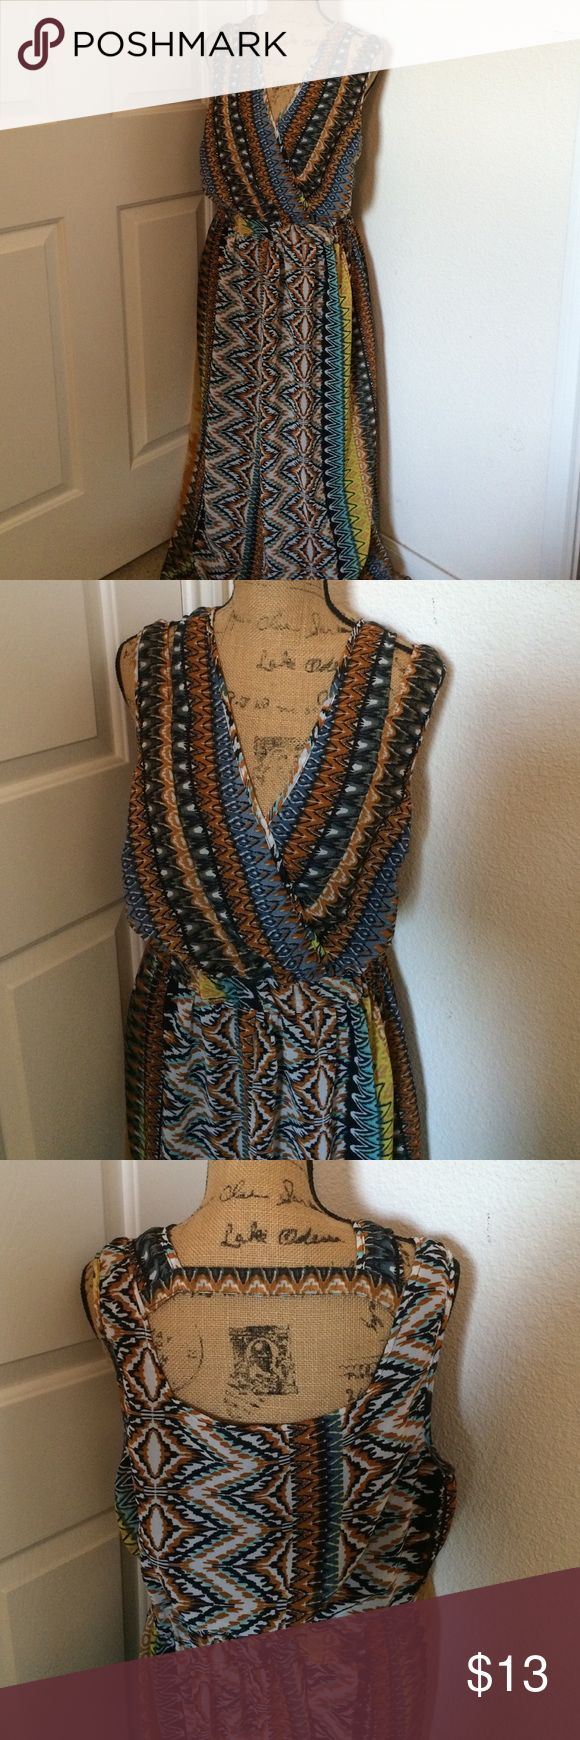 Tribal Maxi Dress 2X Worn only once. Tribal dress maxi dress in 2X. Fully lined • Hidden cinched waist • Figure Flattering Feel free to ask any questions Dresses